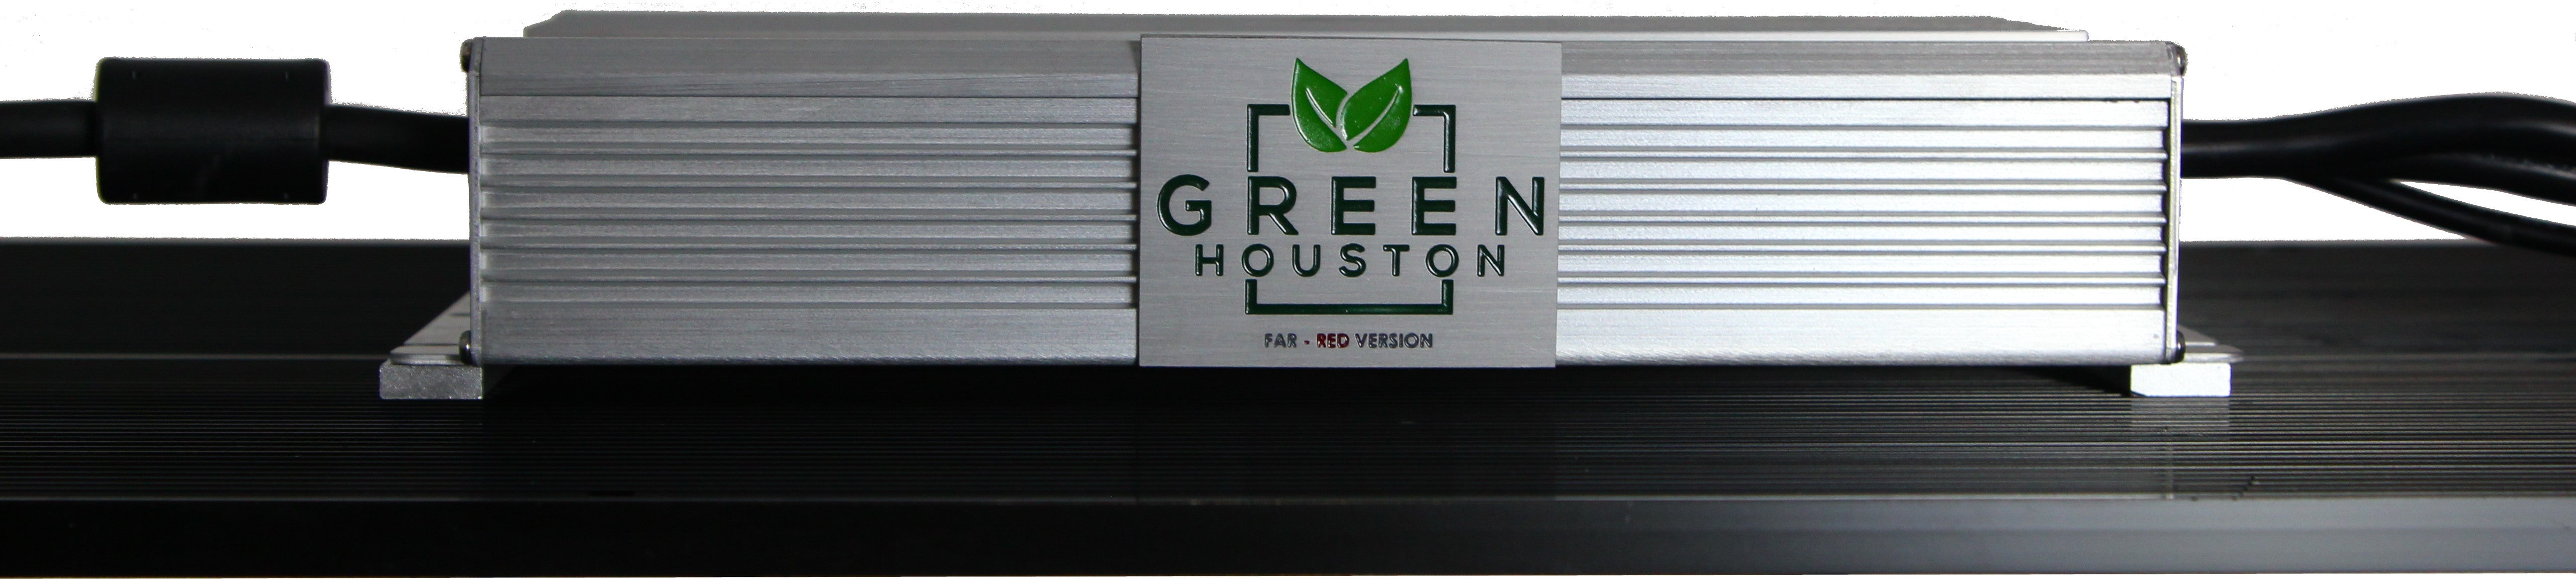 Green Houston LED quantum board 600W with far-red